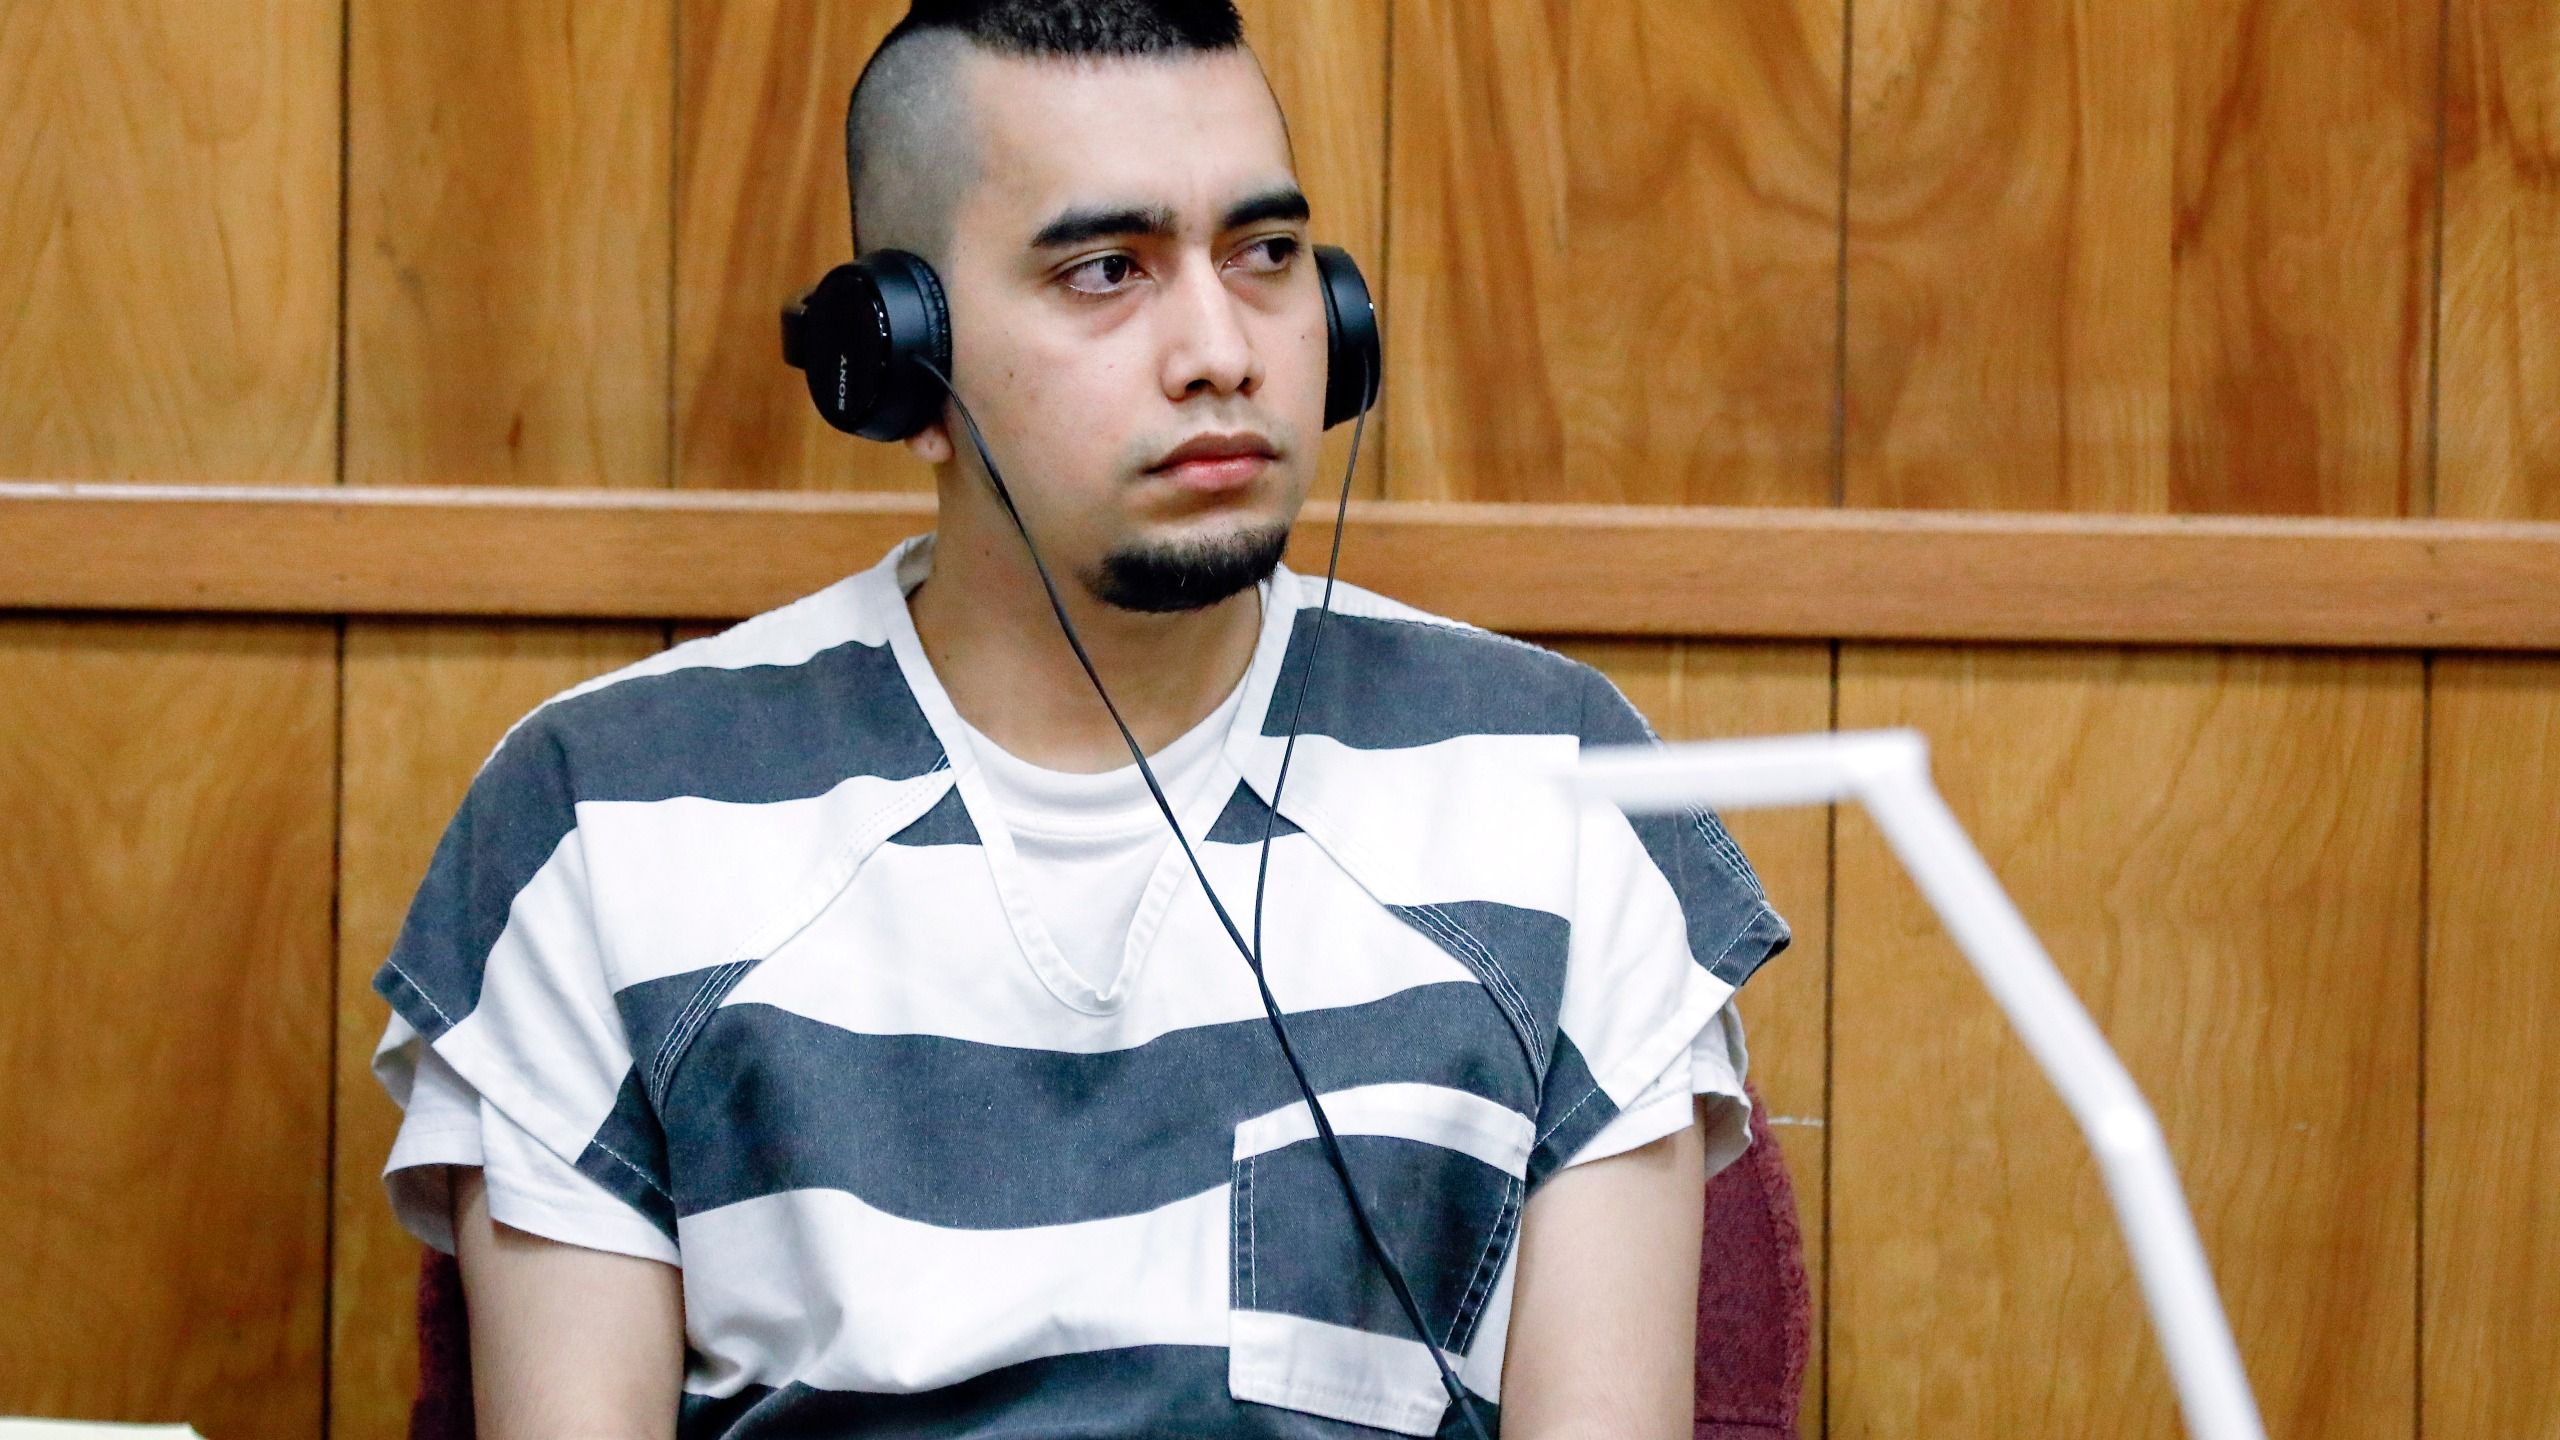 In this July 15, 2021, file photo, Cristhian Bahena Rivera appears during a hearing at the Poweshiek County Courthouse in Montezuma, Iowa. (Jim Slosiarek/The Gazette, Pool,Associated Press)